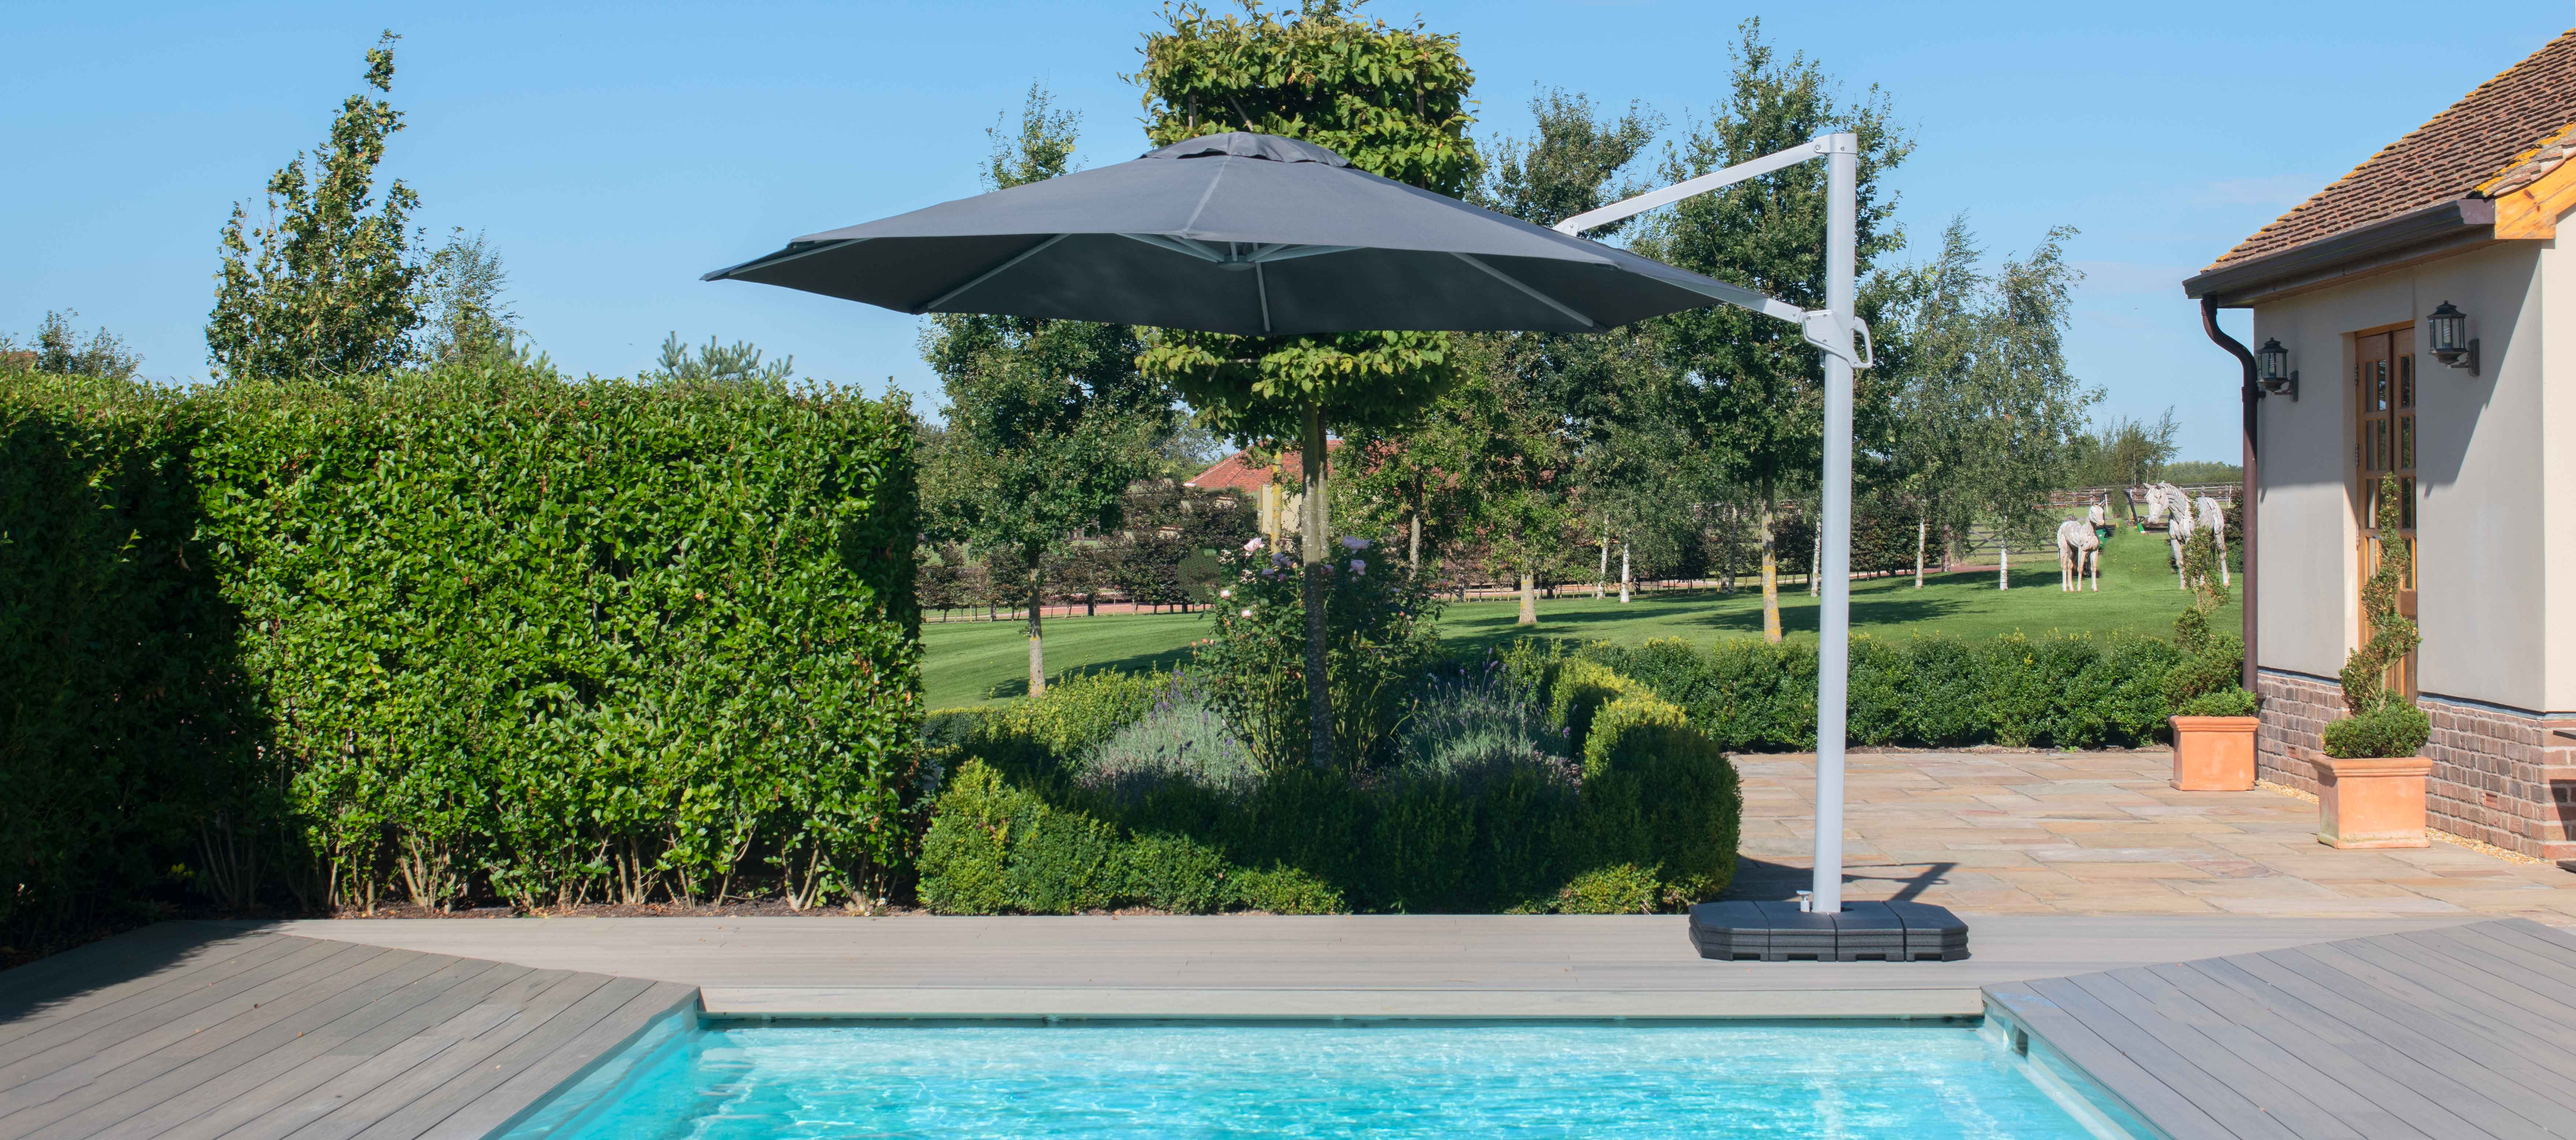 Maze Rattan - Zeus 3.5m Round Rotating Cantilever Parasol With LED Lights - Grey